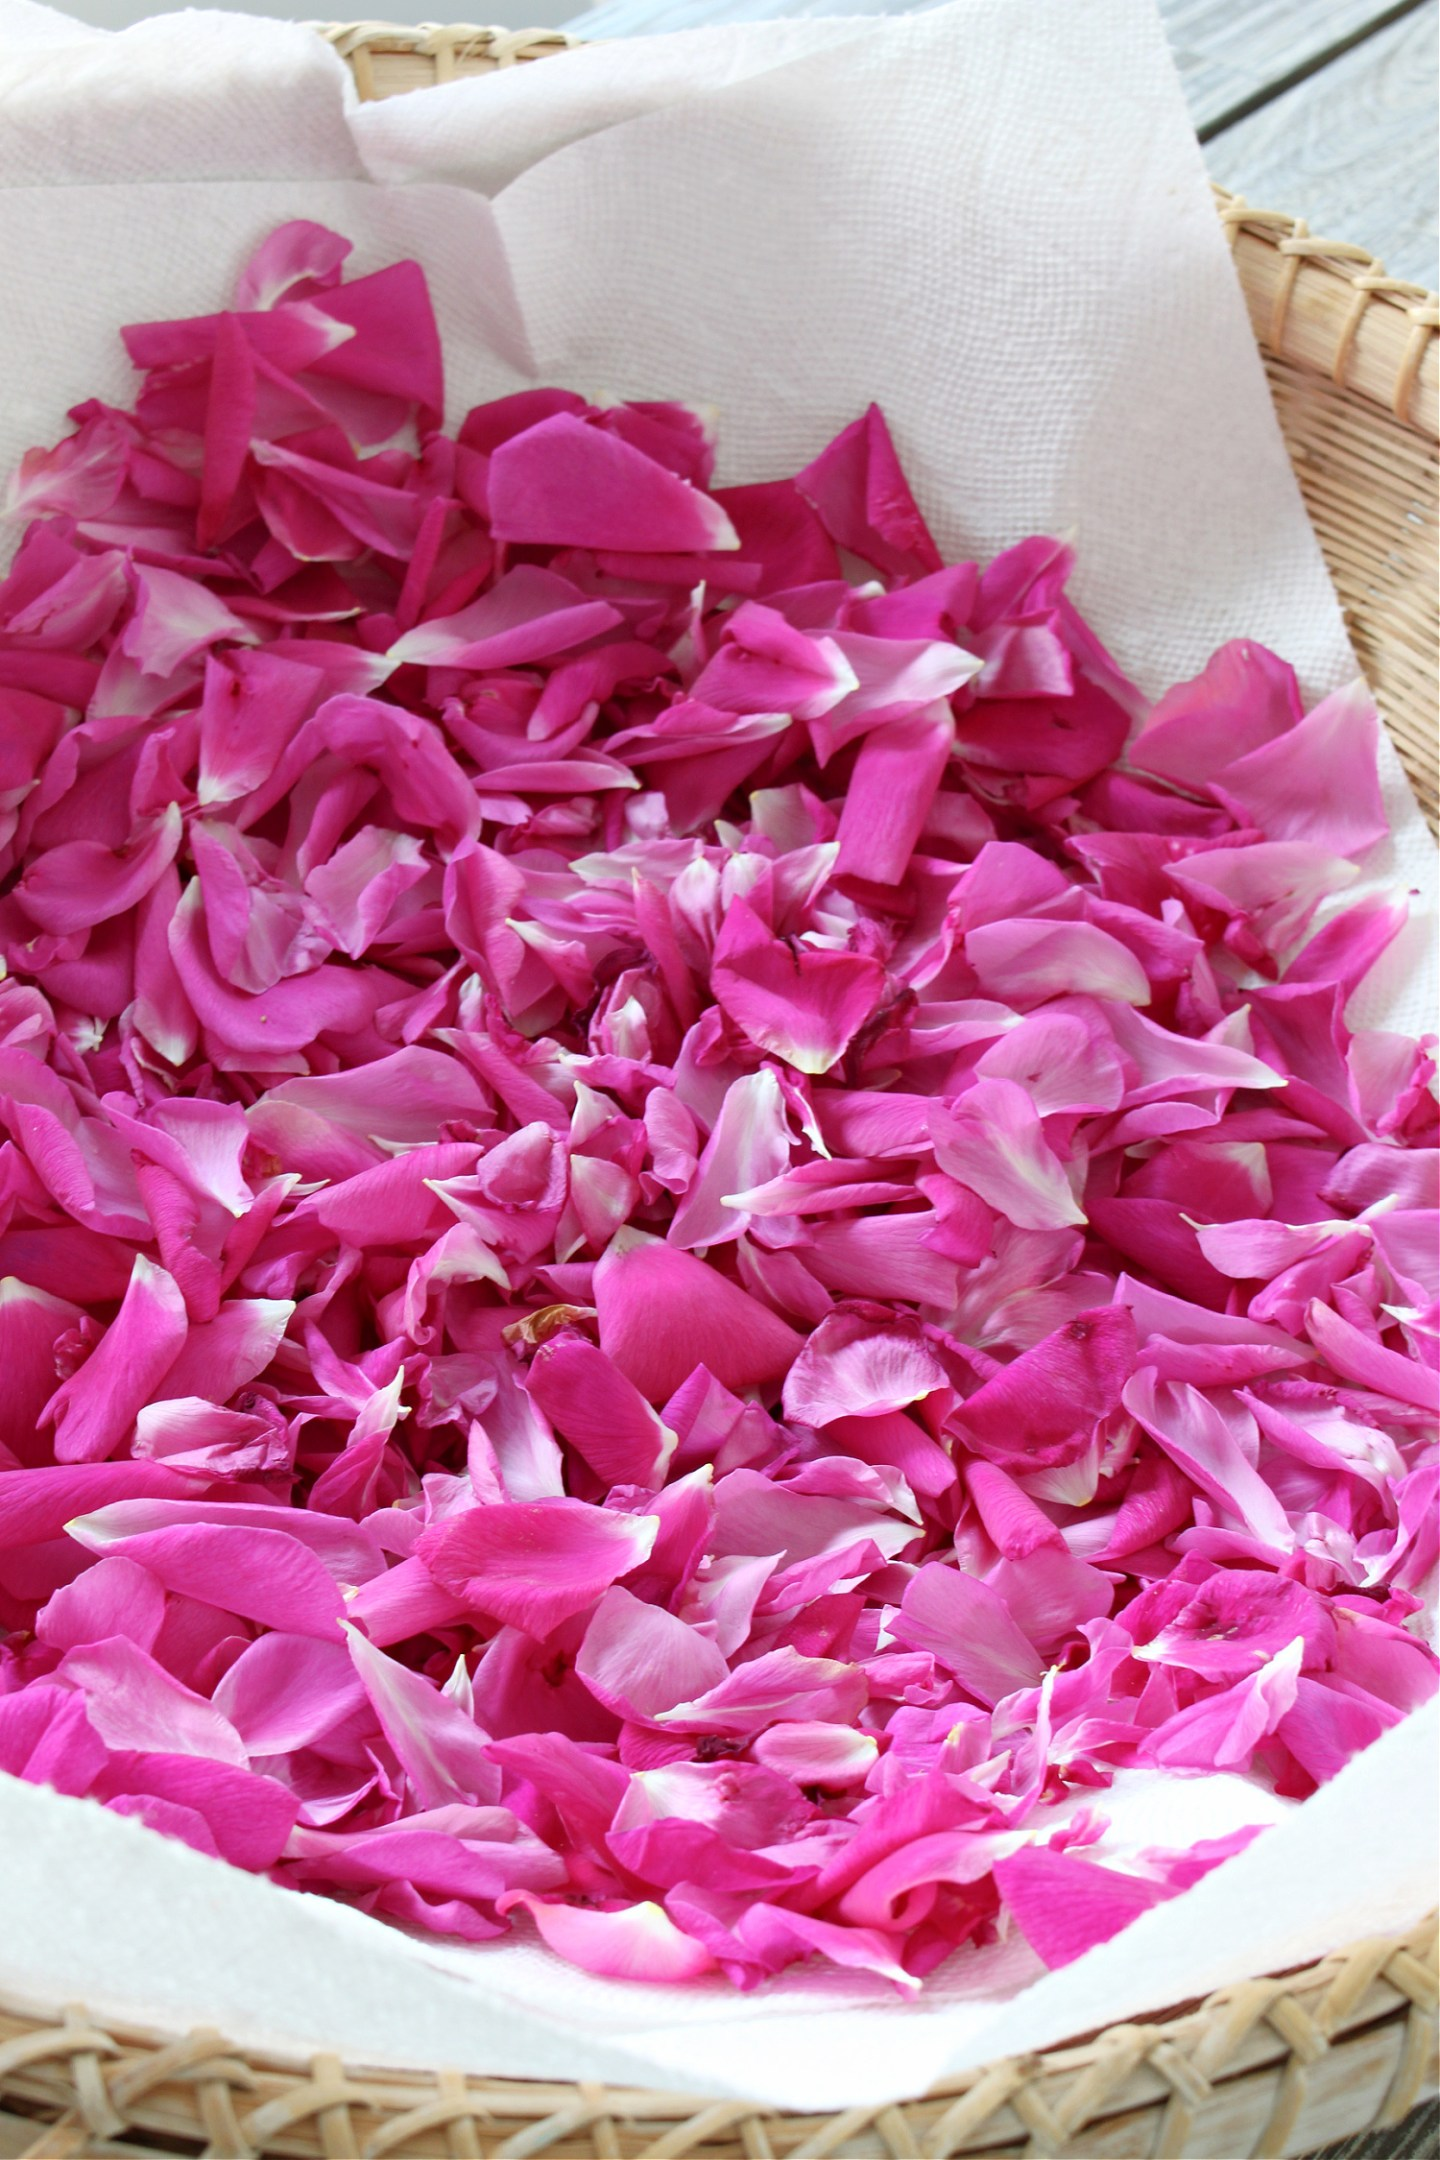 How to Dry Fresh Rose Petals